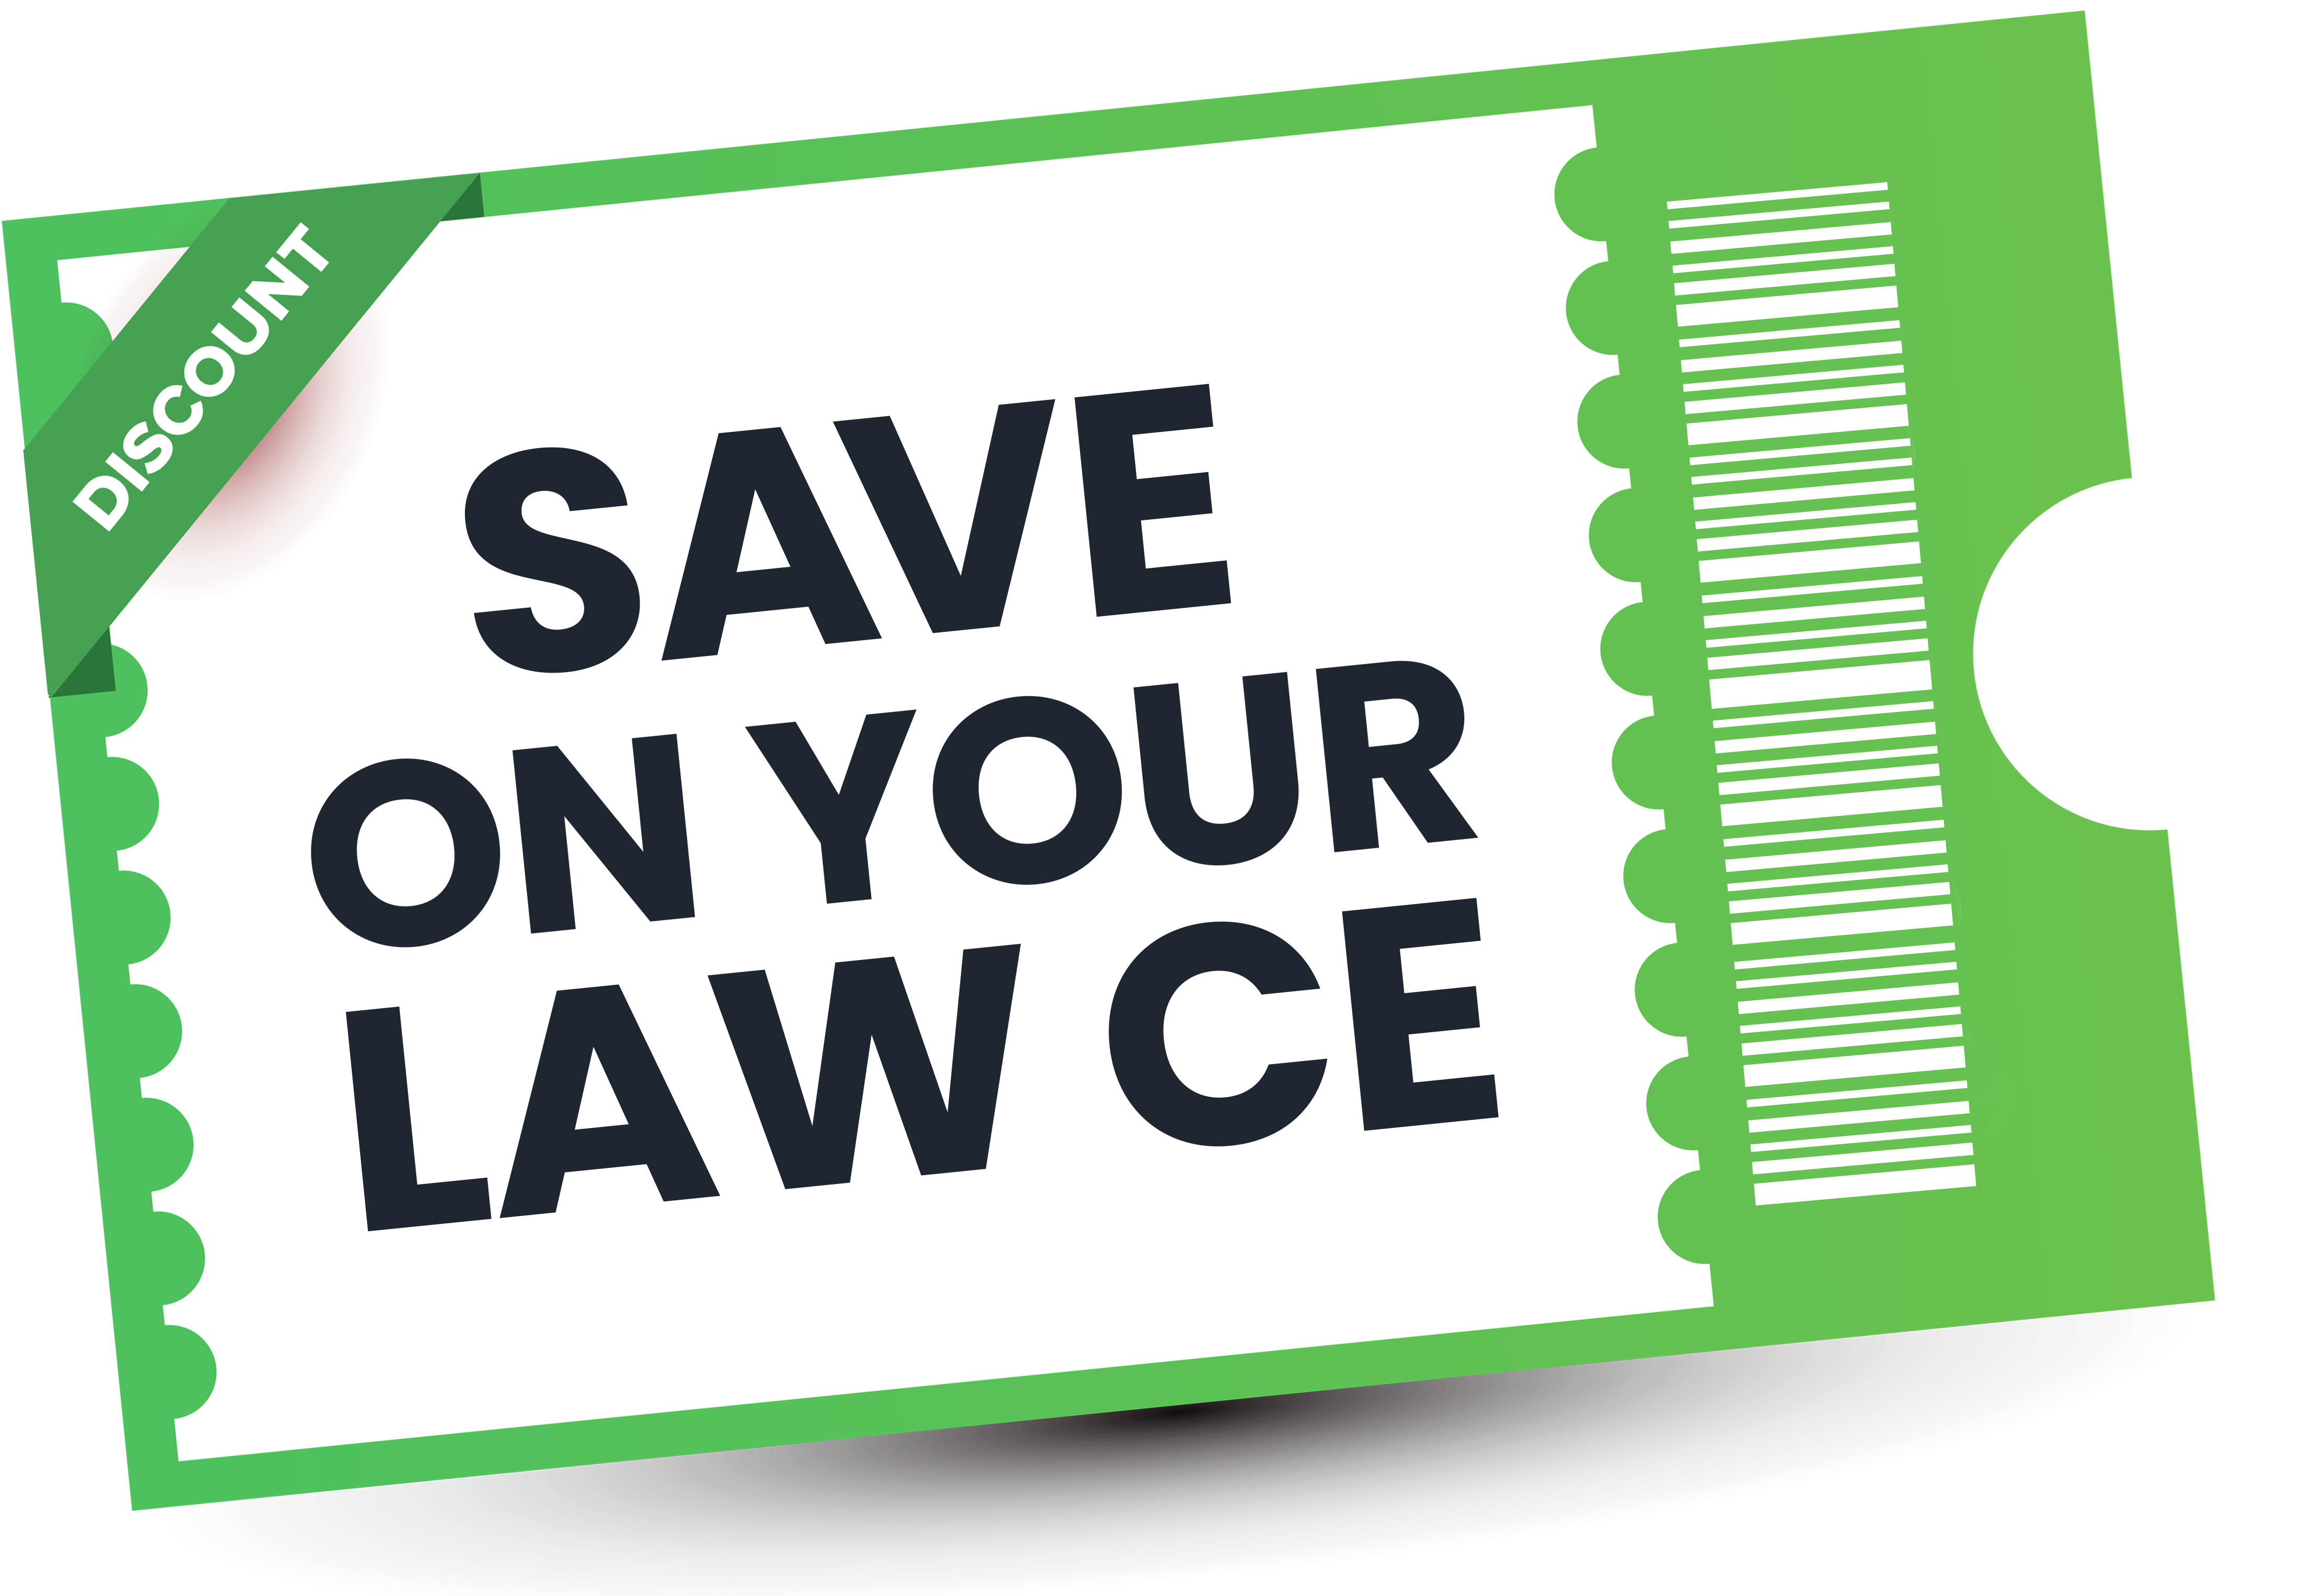 SAVE ON YOUR LAW CE